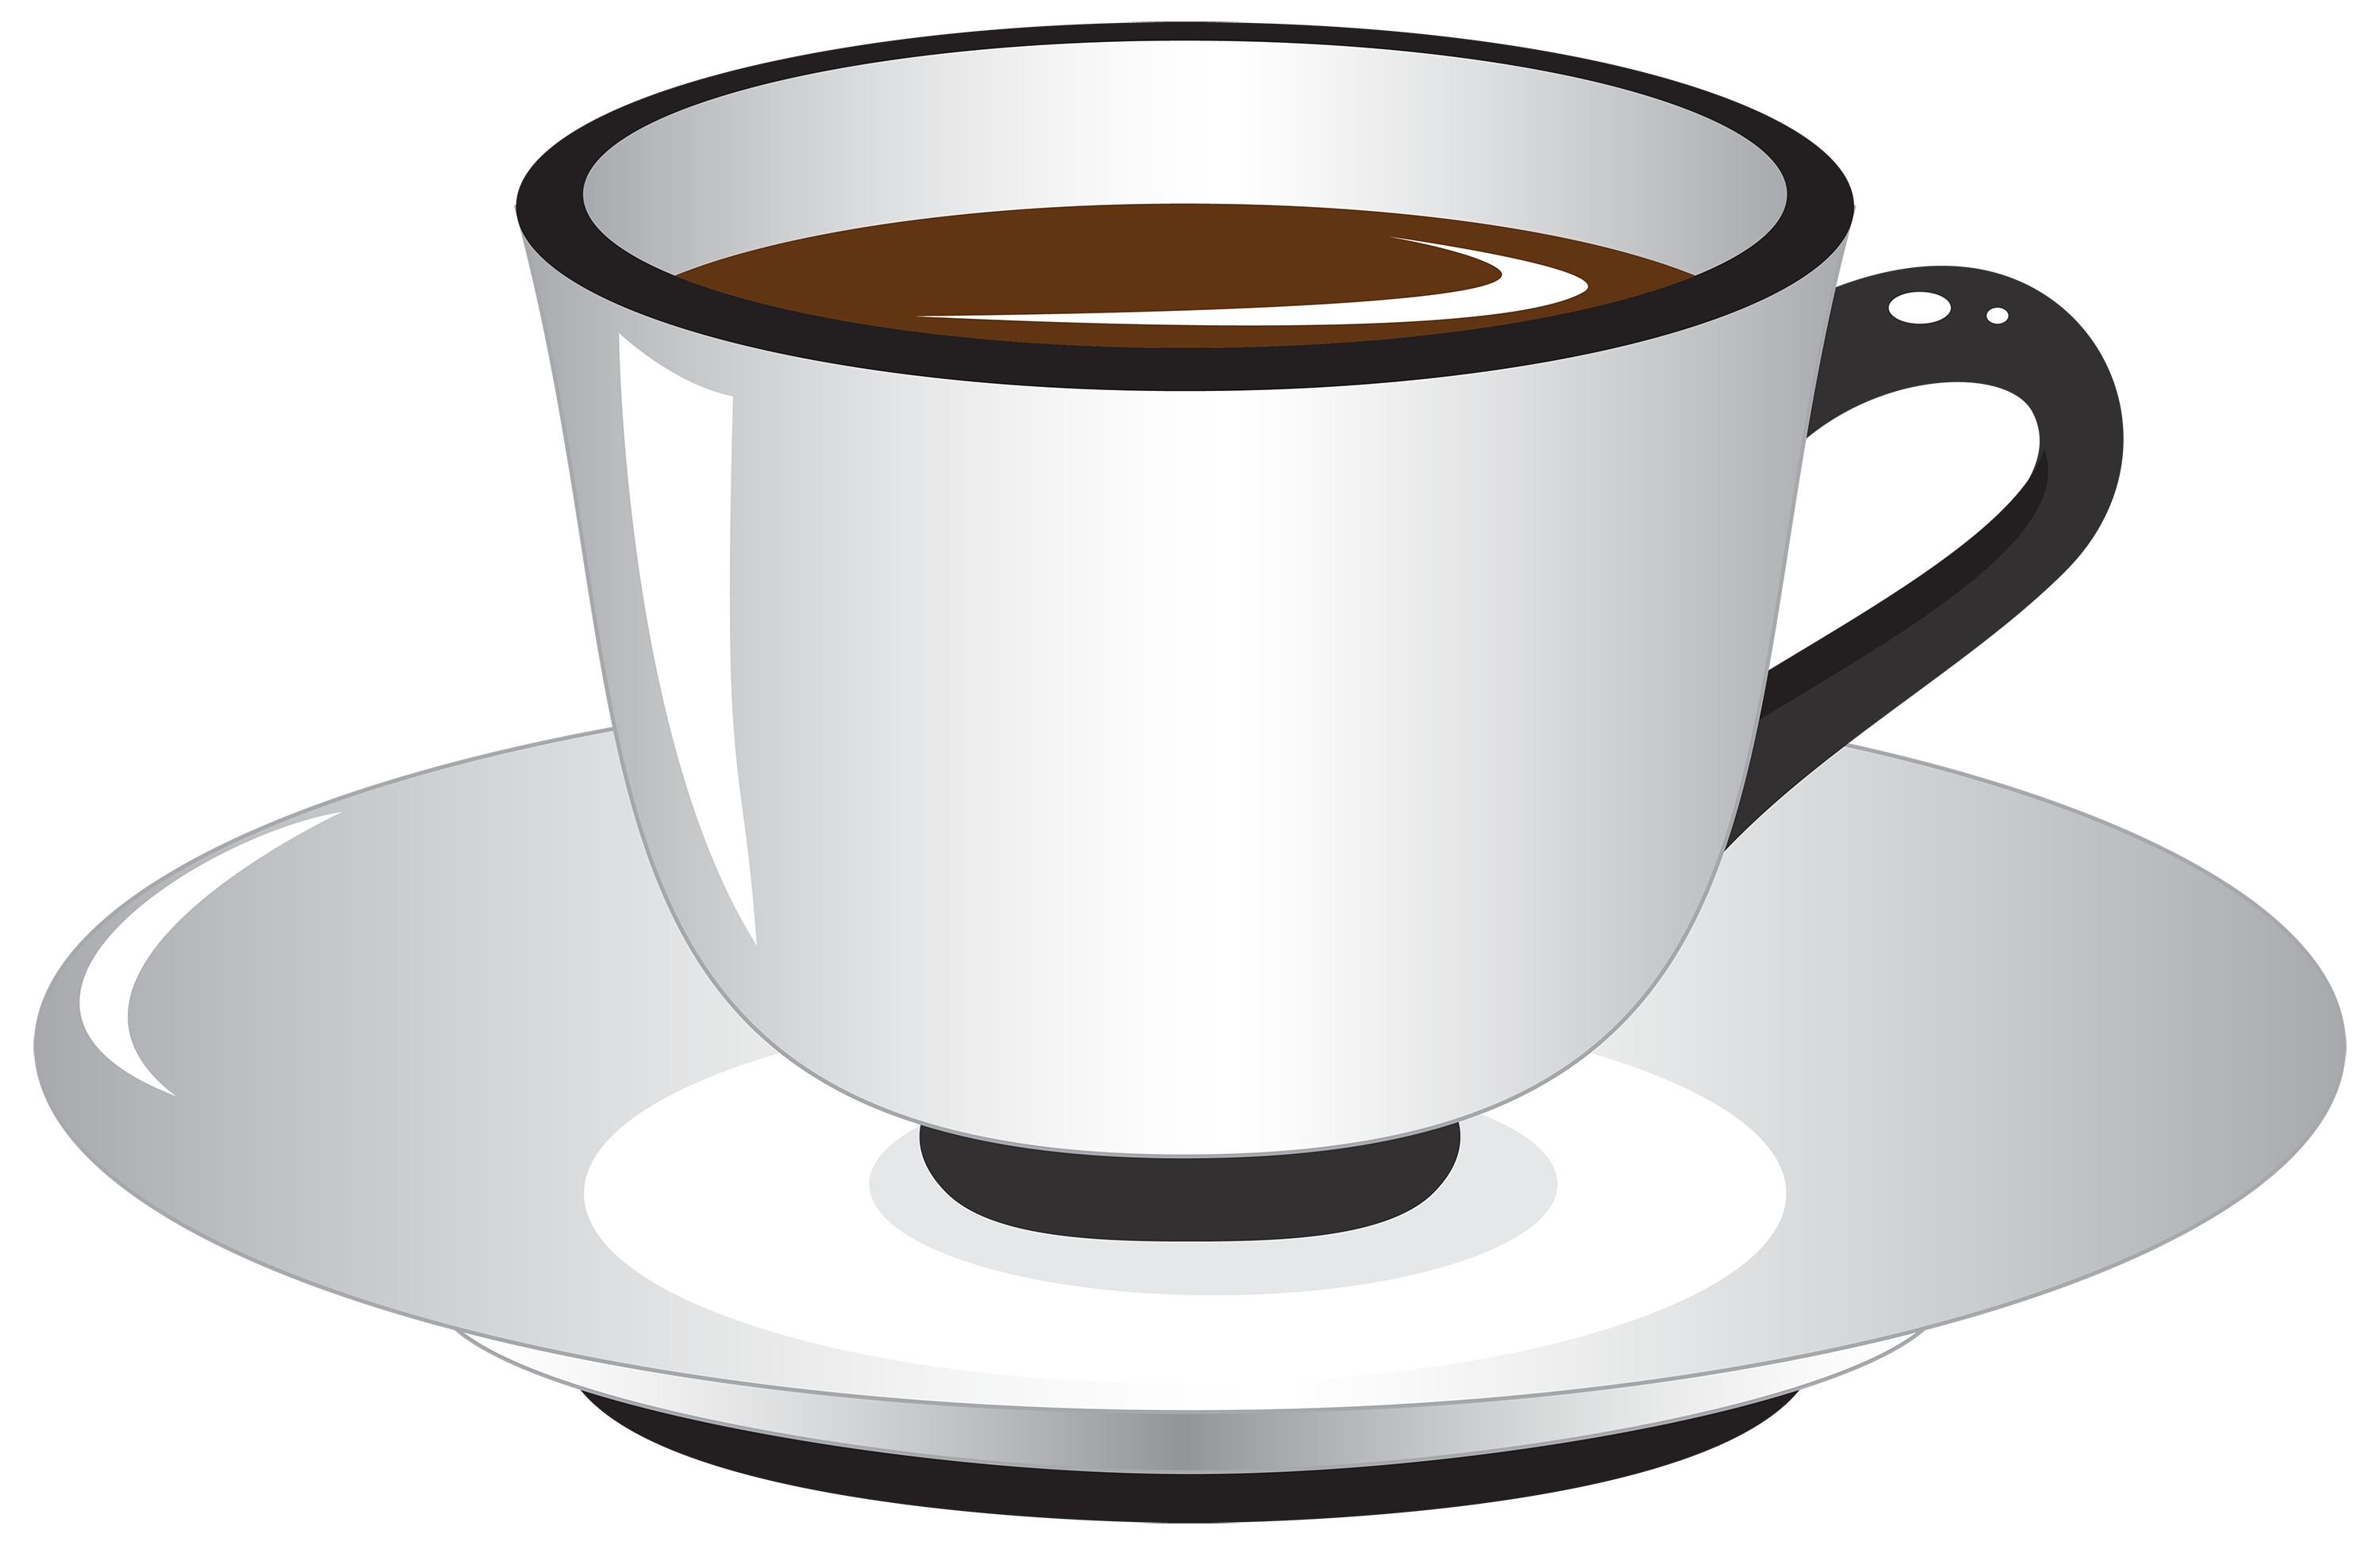 3000x1948 Coffee Clip Art Free Clipart Images 3 3